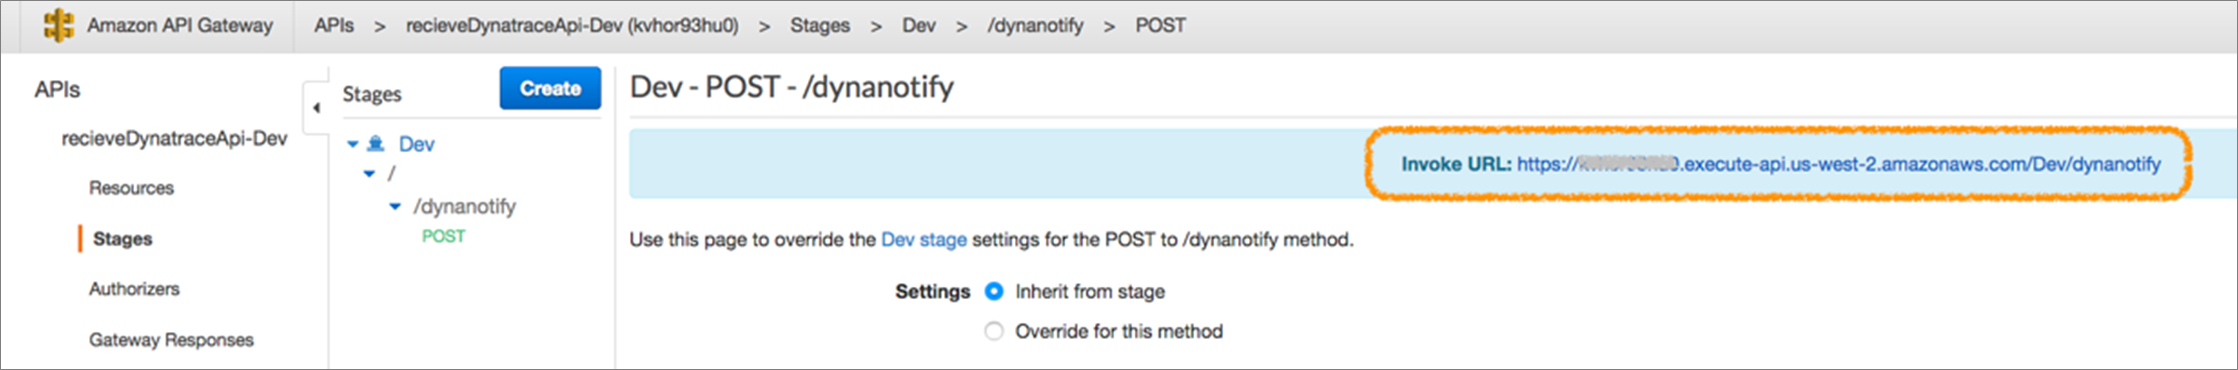 Building Self-Healing Infrastructure-as-Code with Dynatrace, AWS